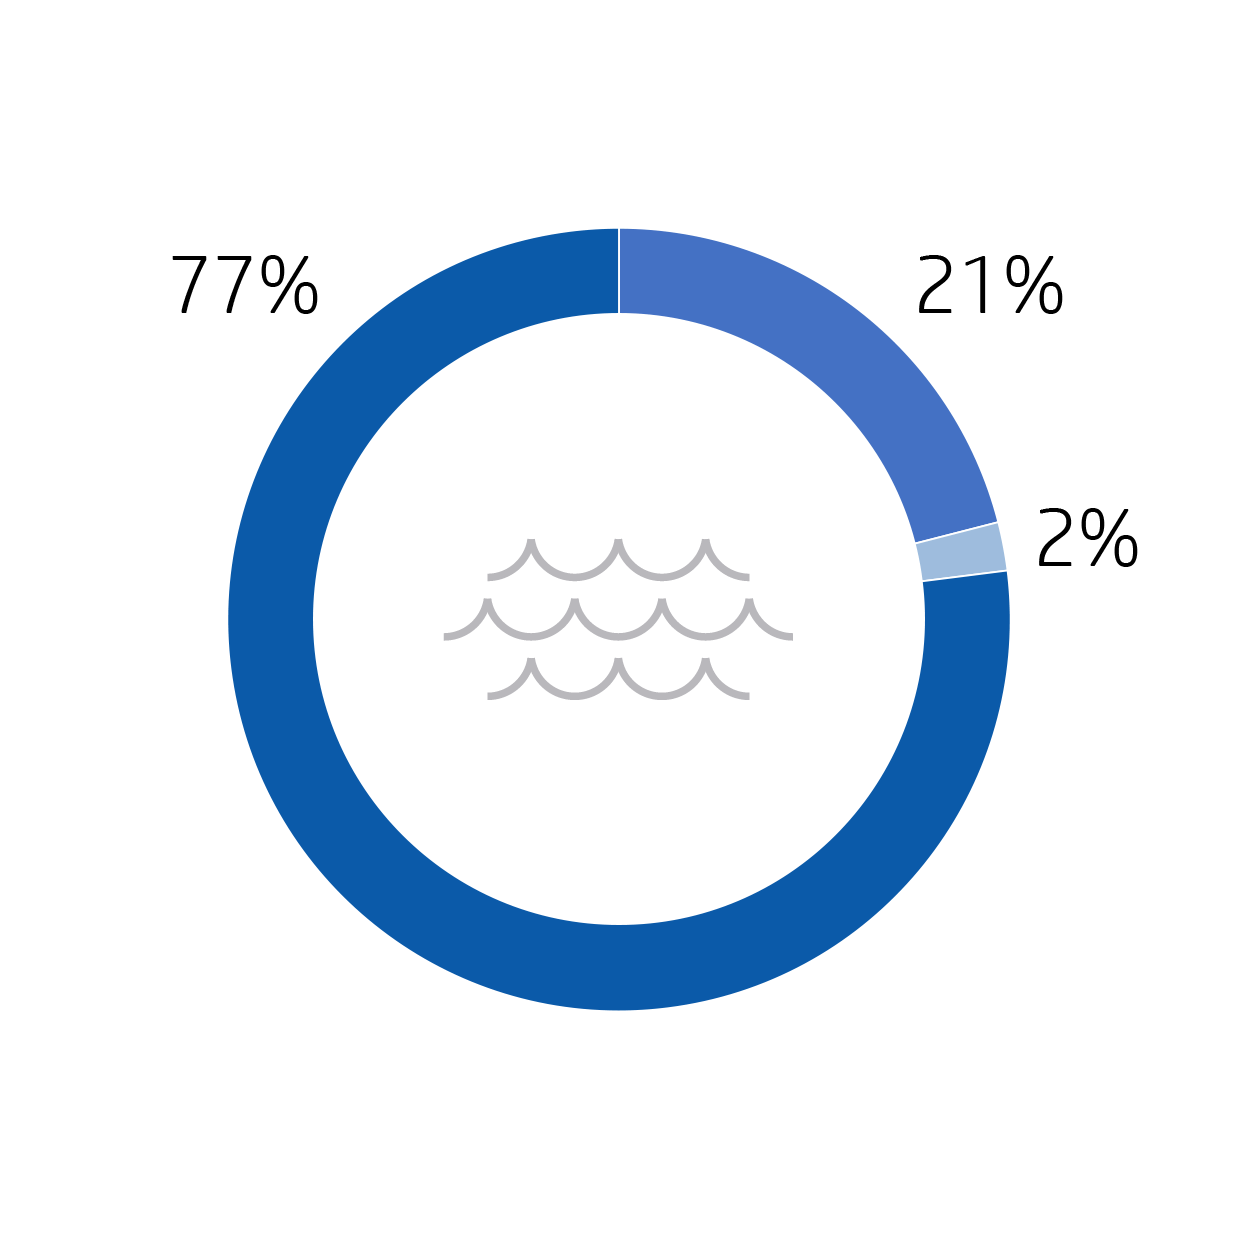 Image of a blue graphic showing HP's water footprint